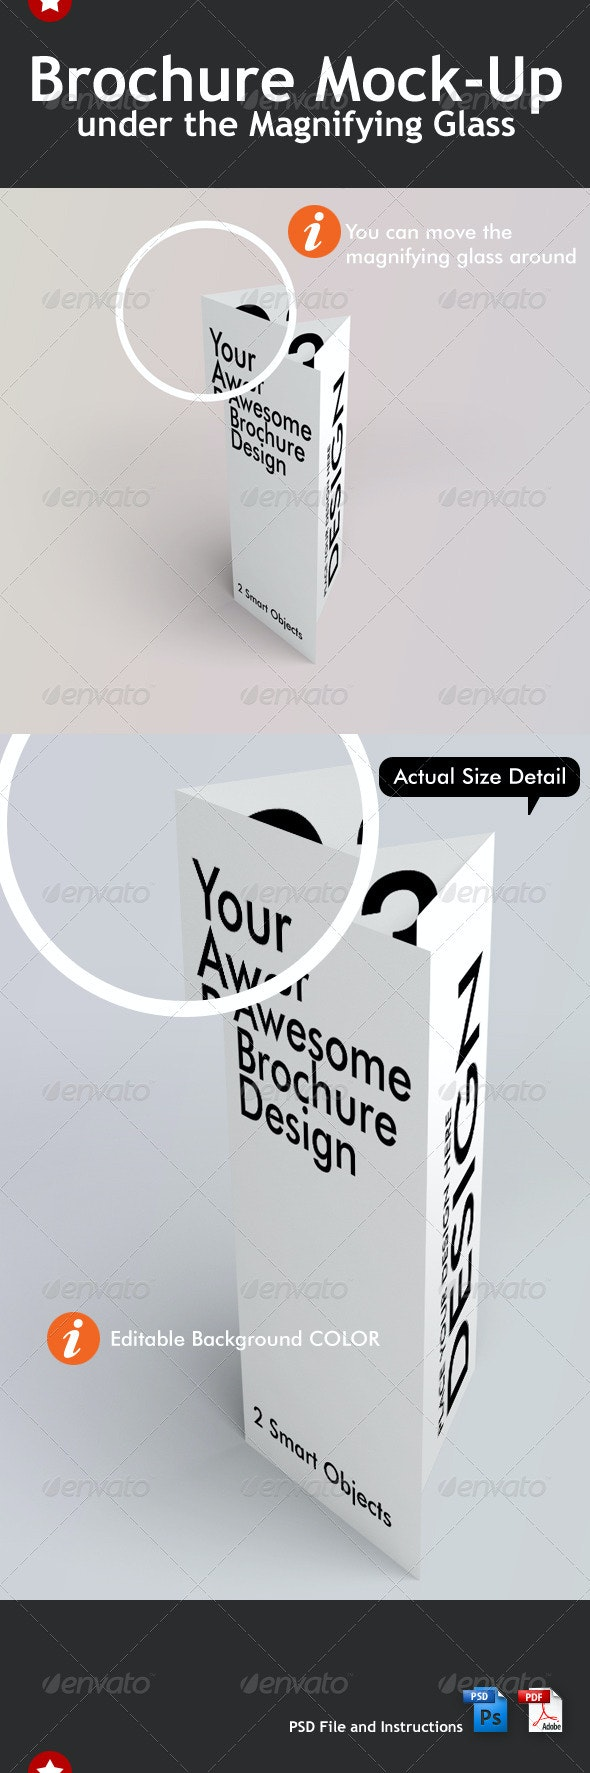 3 Fold Brochure Mock-Up Under the Magnifying Glass - Brochures Print